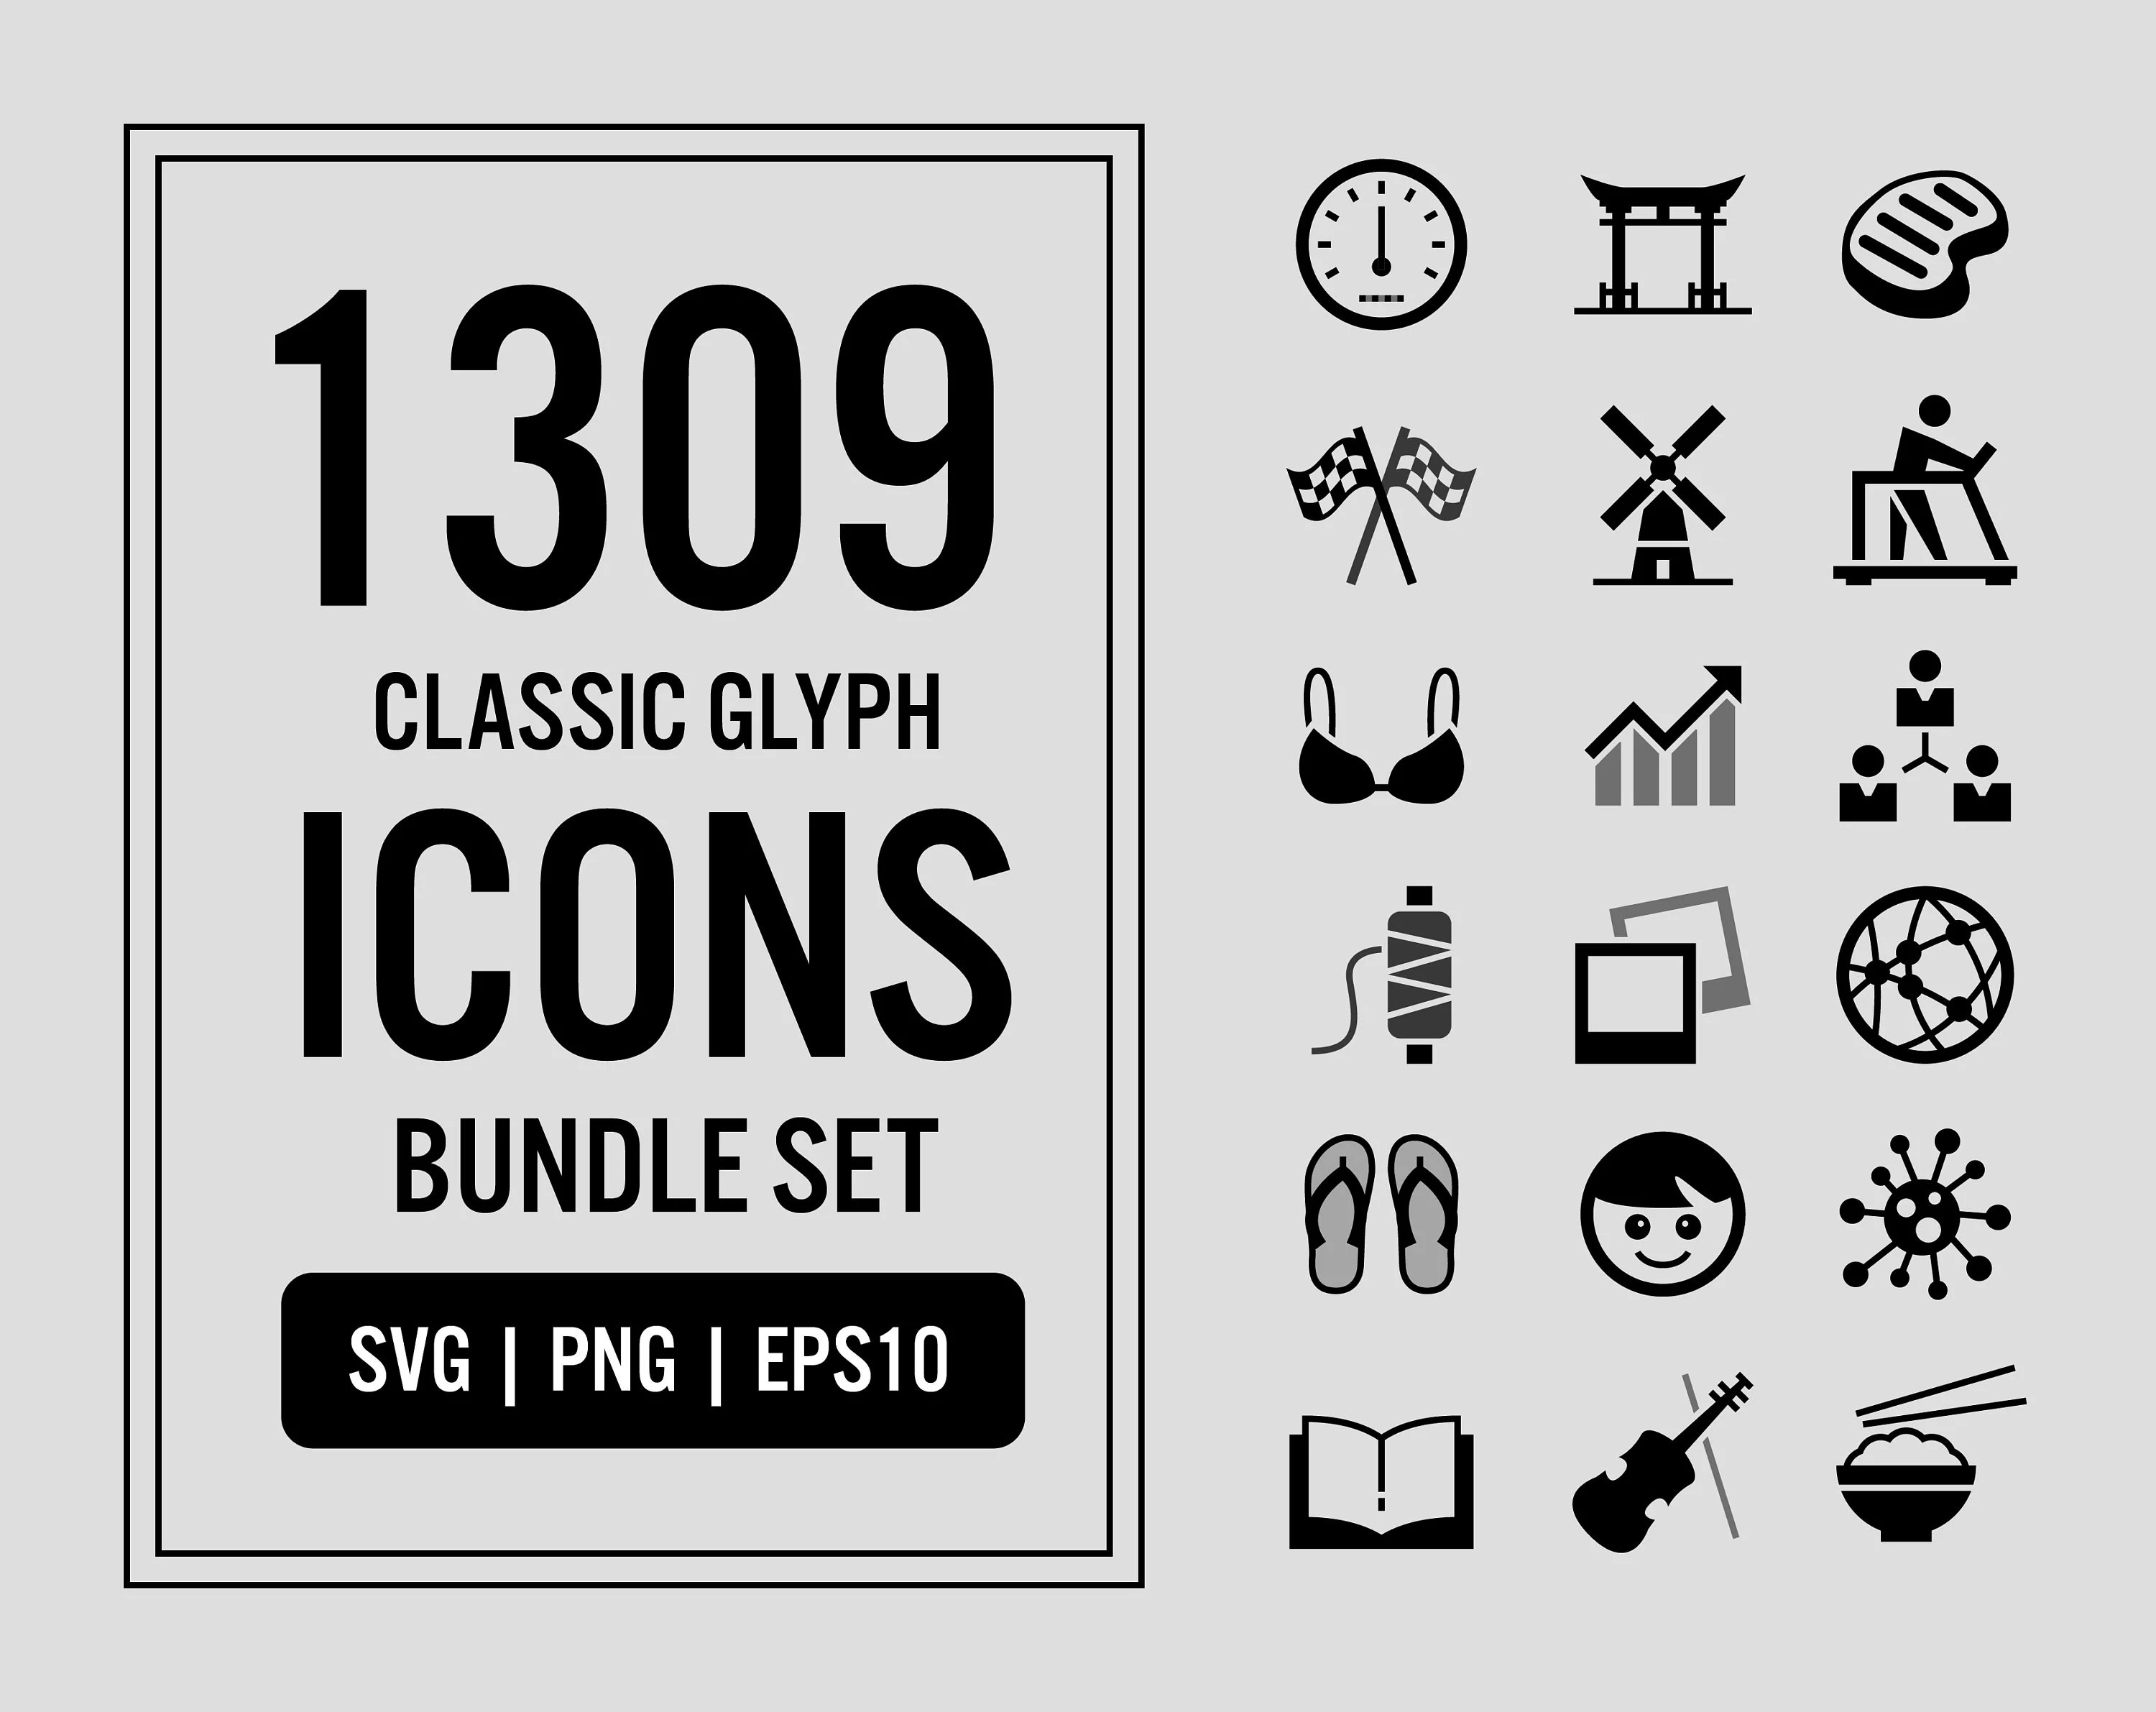 View Free Glyphicons Svg Pics Free SVG files   Silhouette and Cricut Cutting Files